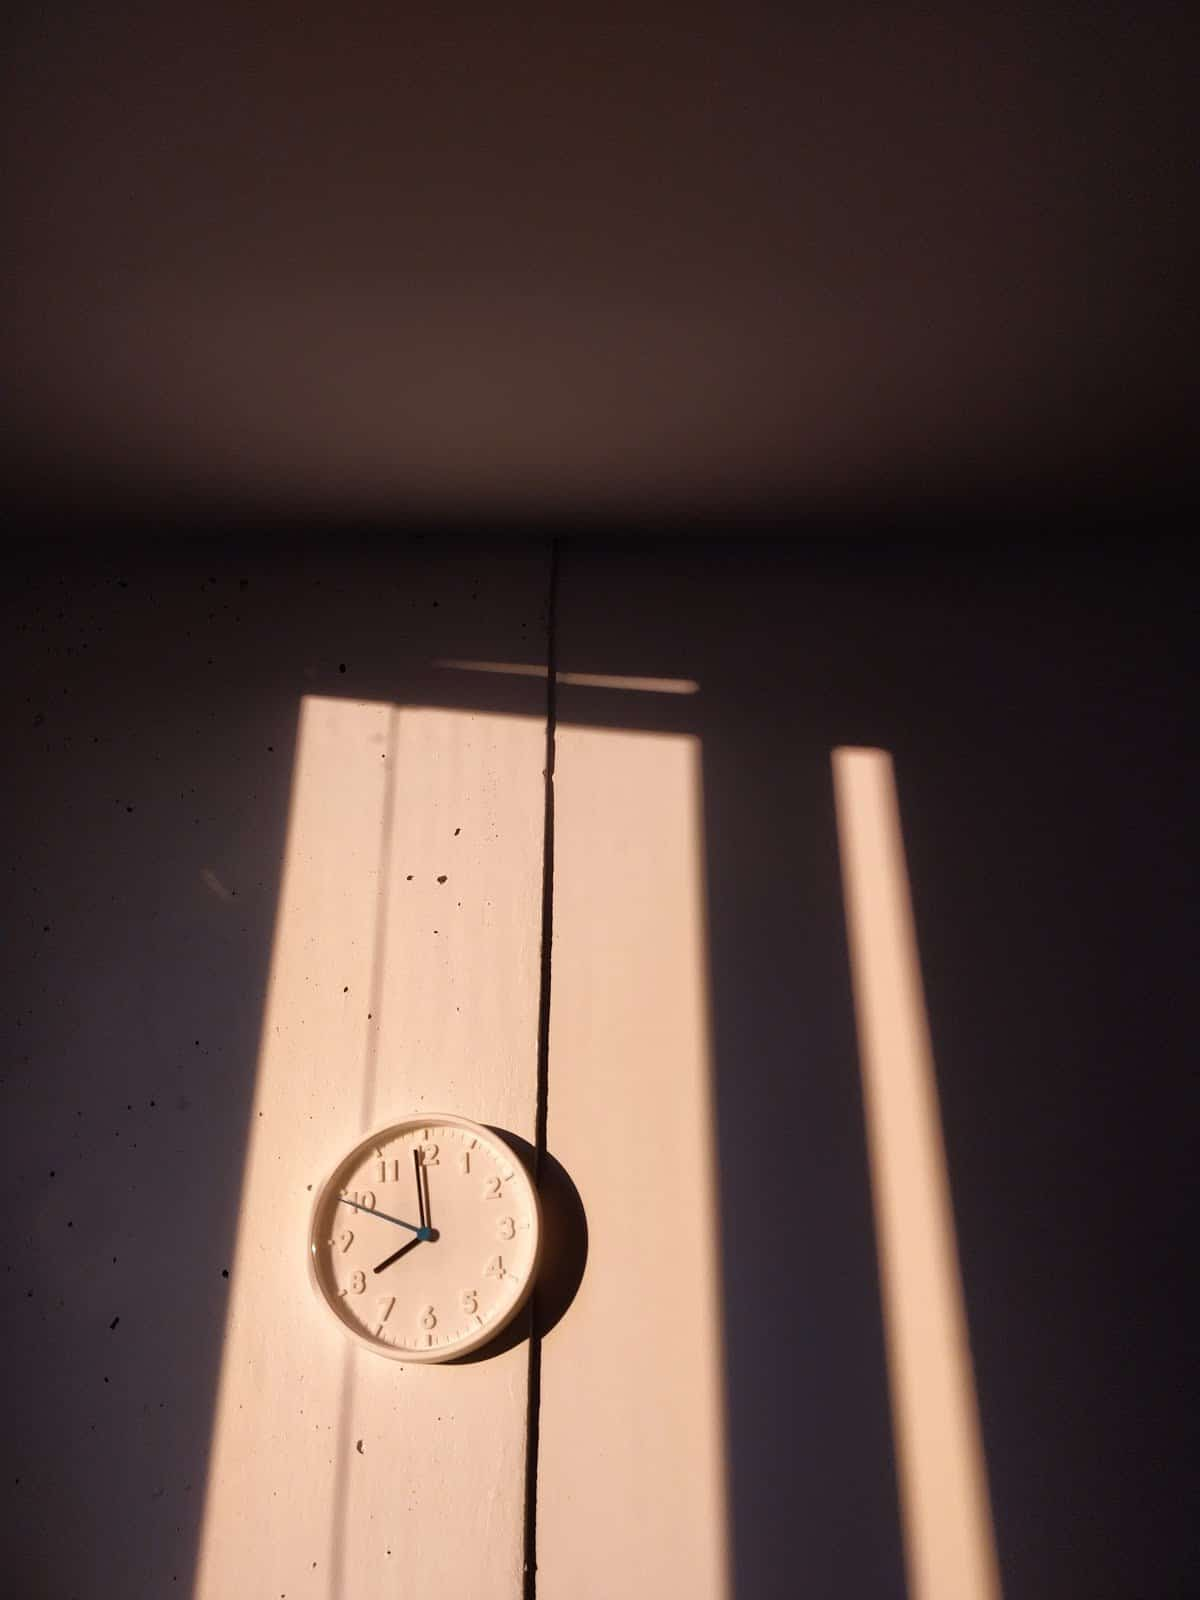 white-clock-on-white-wall-with-heavy-shadows